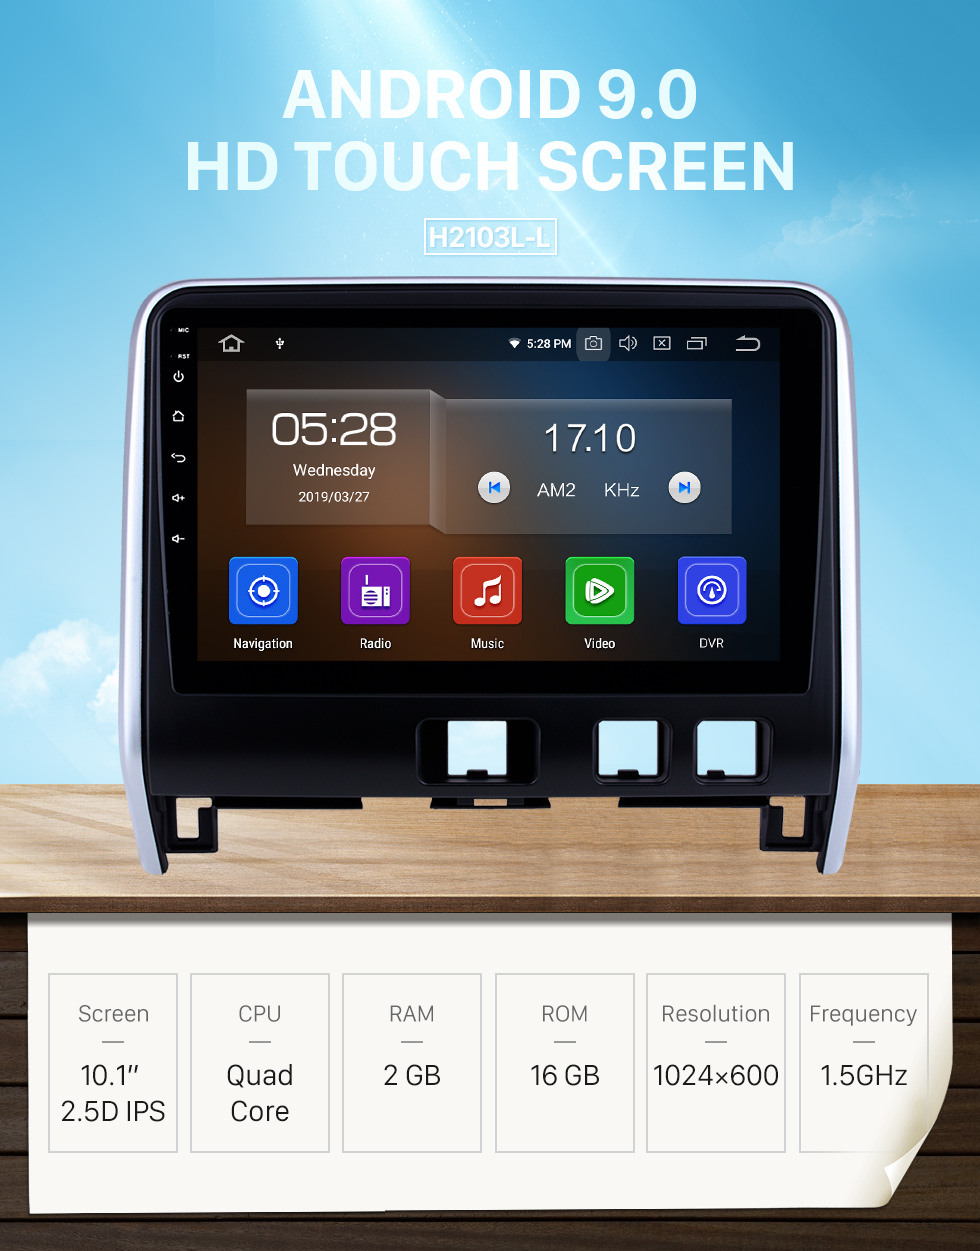 Seicane Aftermarket Android 9.0 HD Touchscreen 10.1 inch Radio for 2016 2017 2018 Nissan Serena Bluetooth GPS Navigation Head unit support 3G/4G wifi DVD Player Carplay 1080P